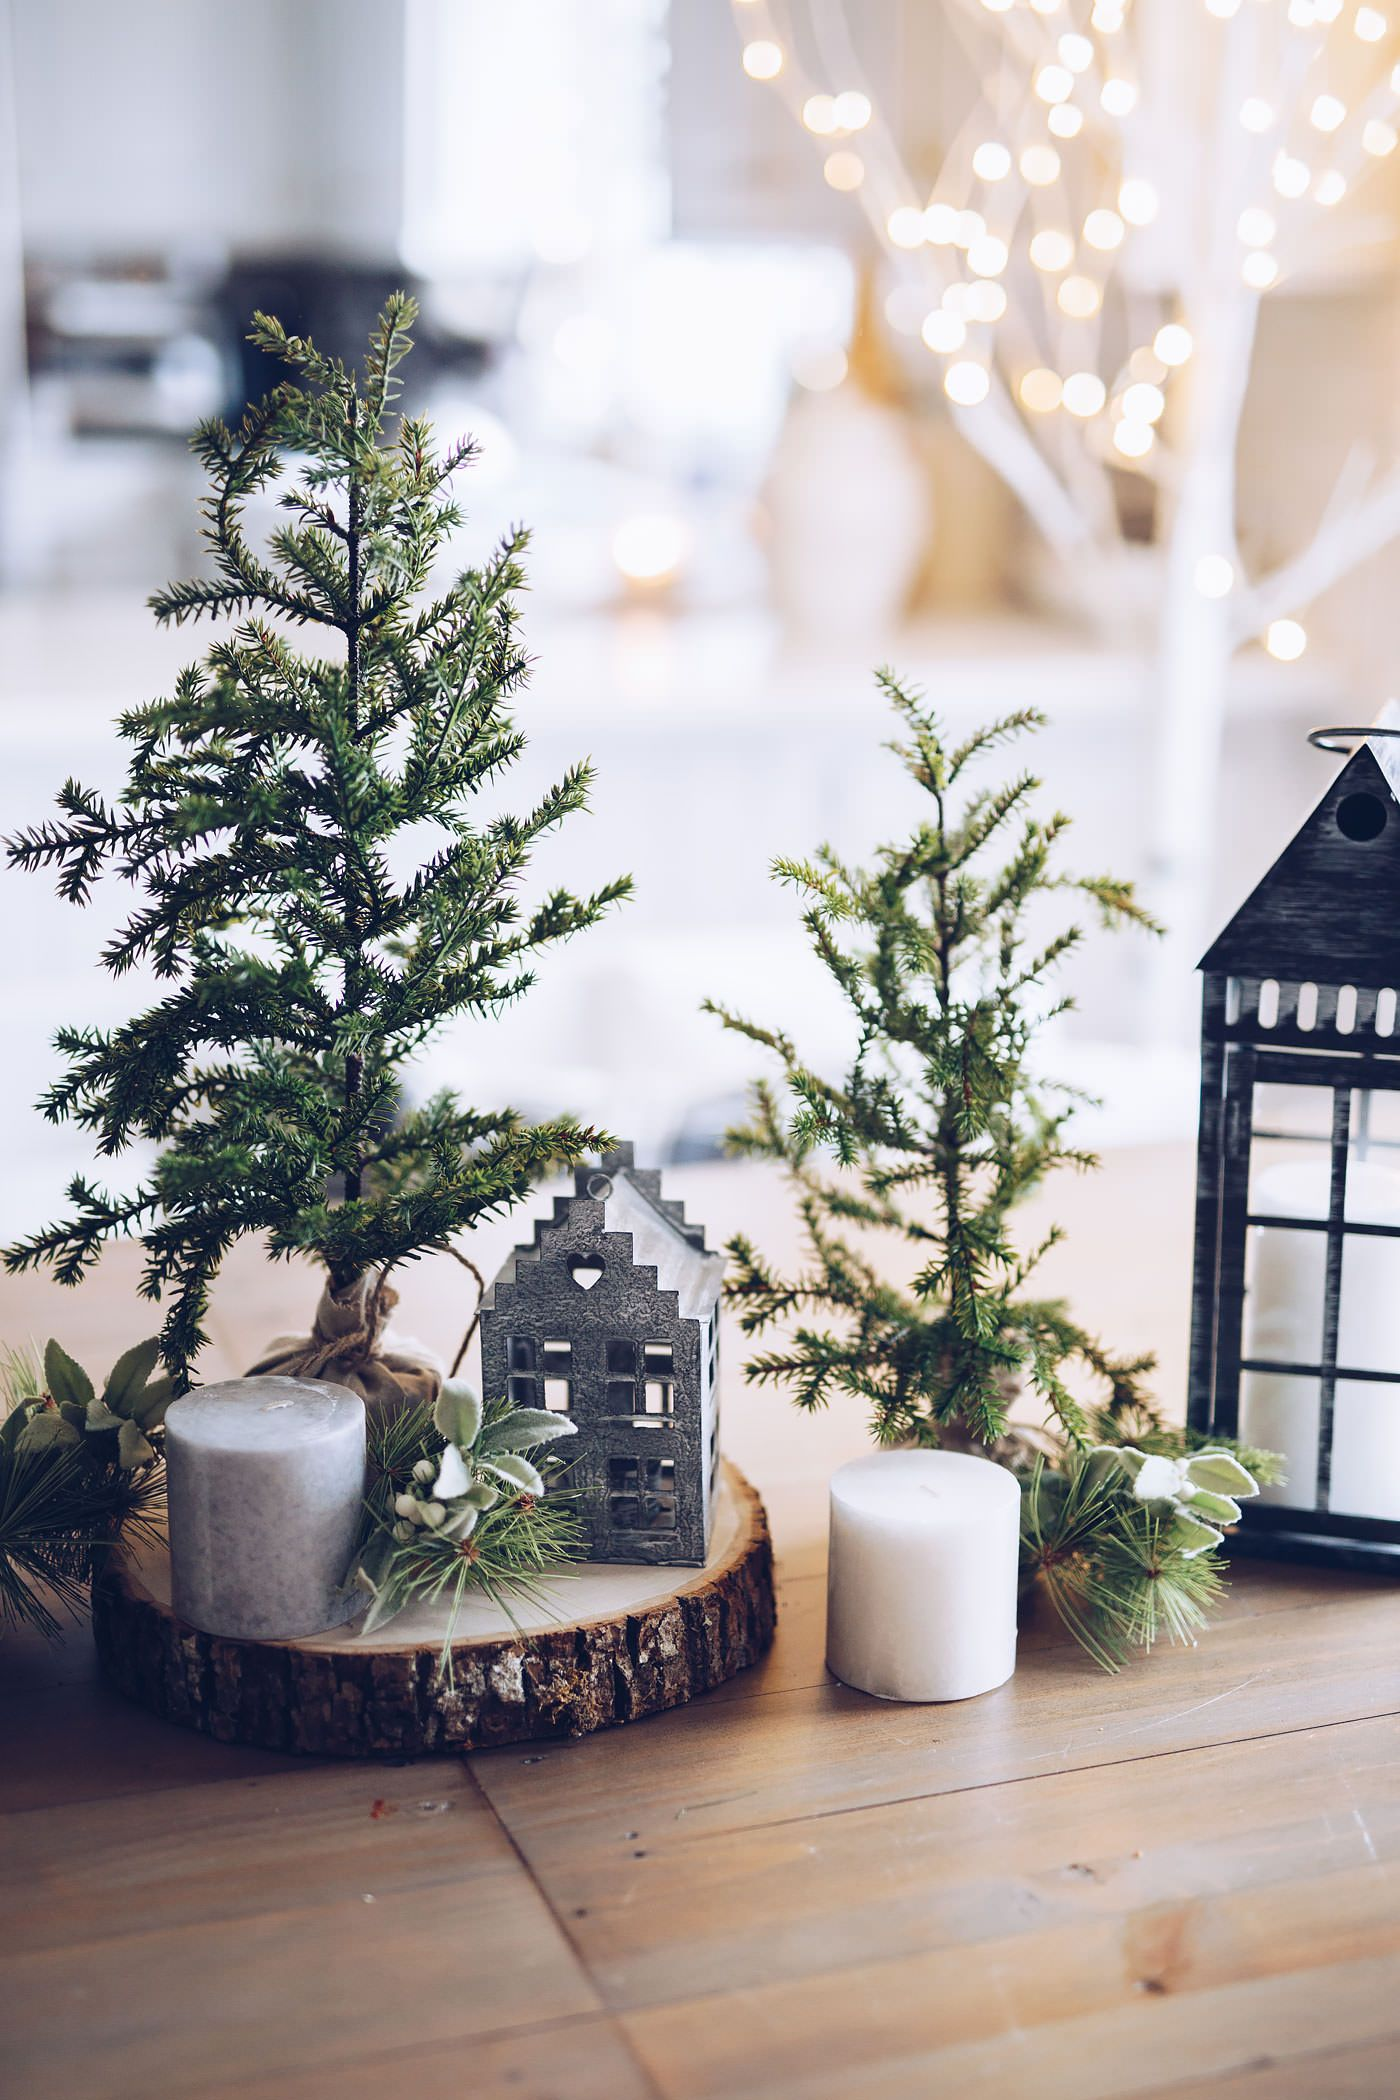 Window well decoration ideas  cloth  cabin curated collection  christmas  pinterest  christmas